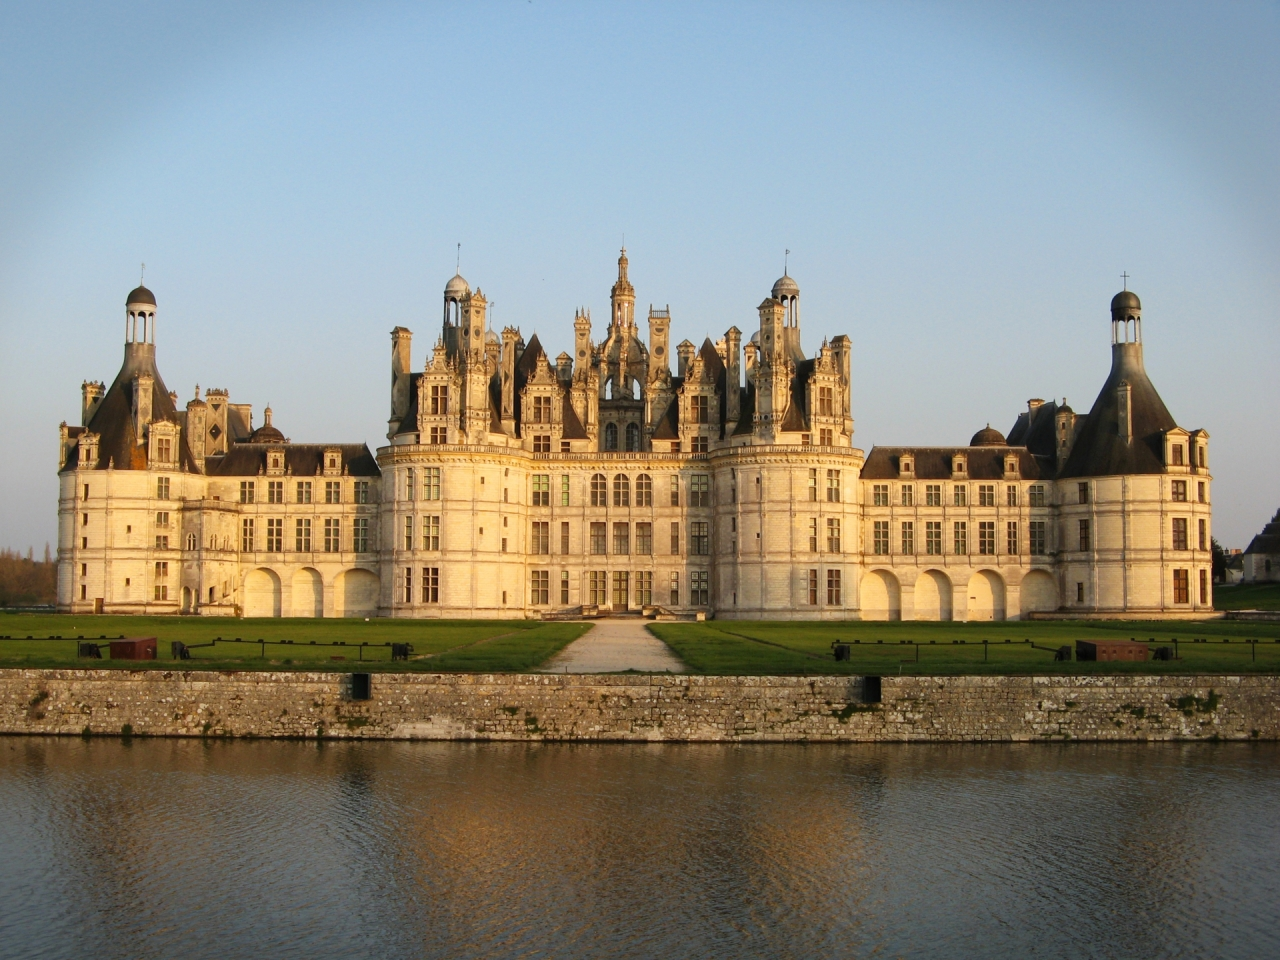 Royal Castle Chambord, palace in France